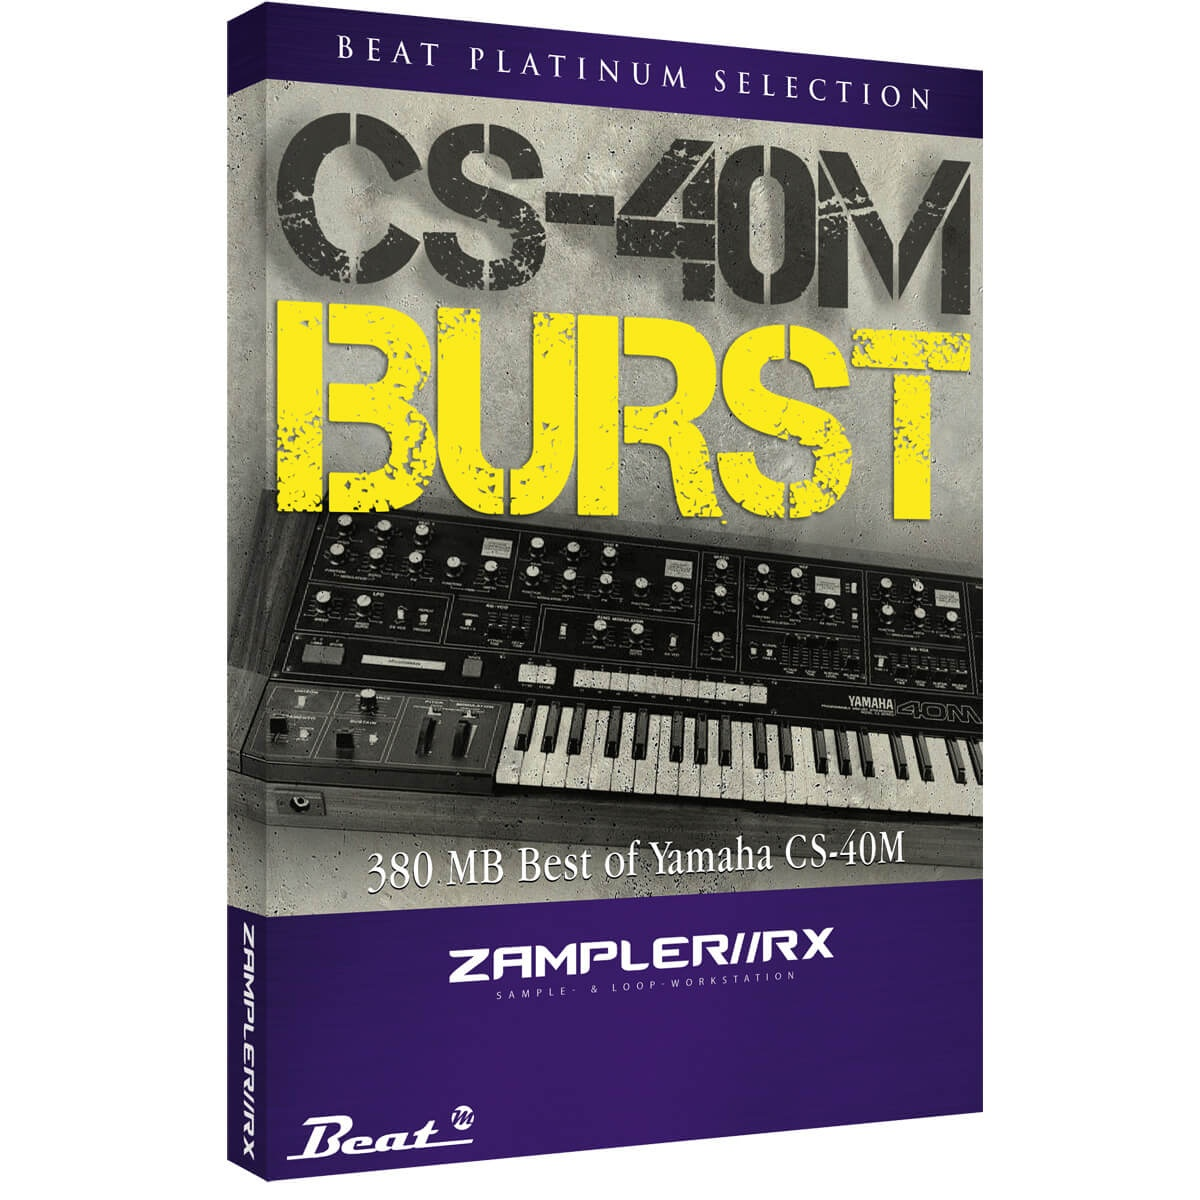 CS40-M BURST – Vintage sound bank for Zampler//RX workstation (Win/OSX plugin included)